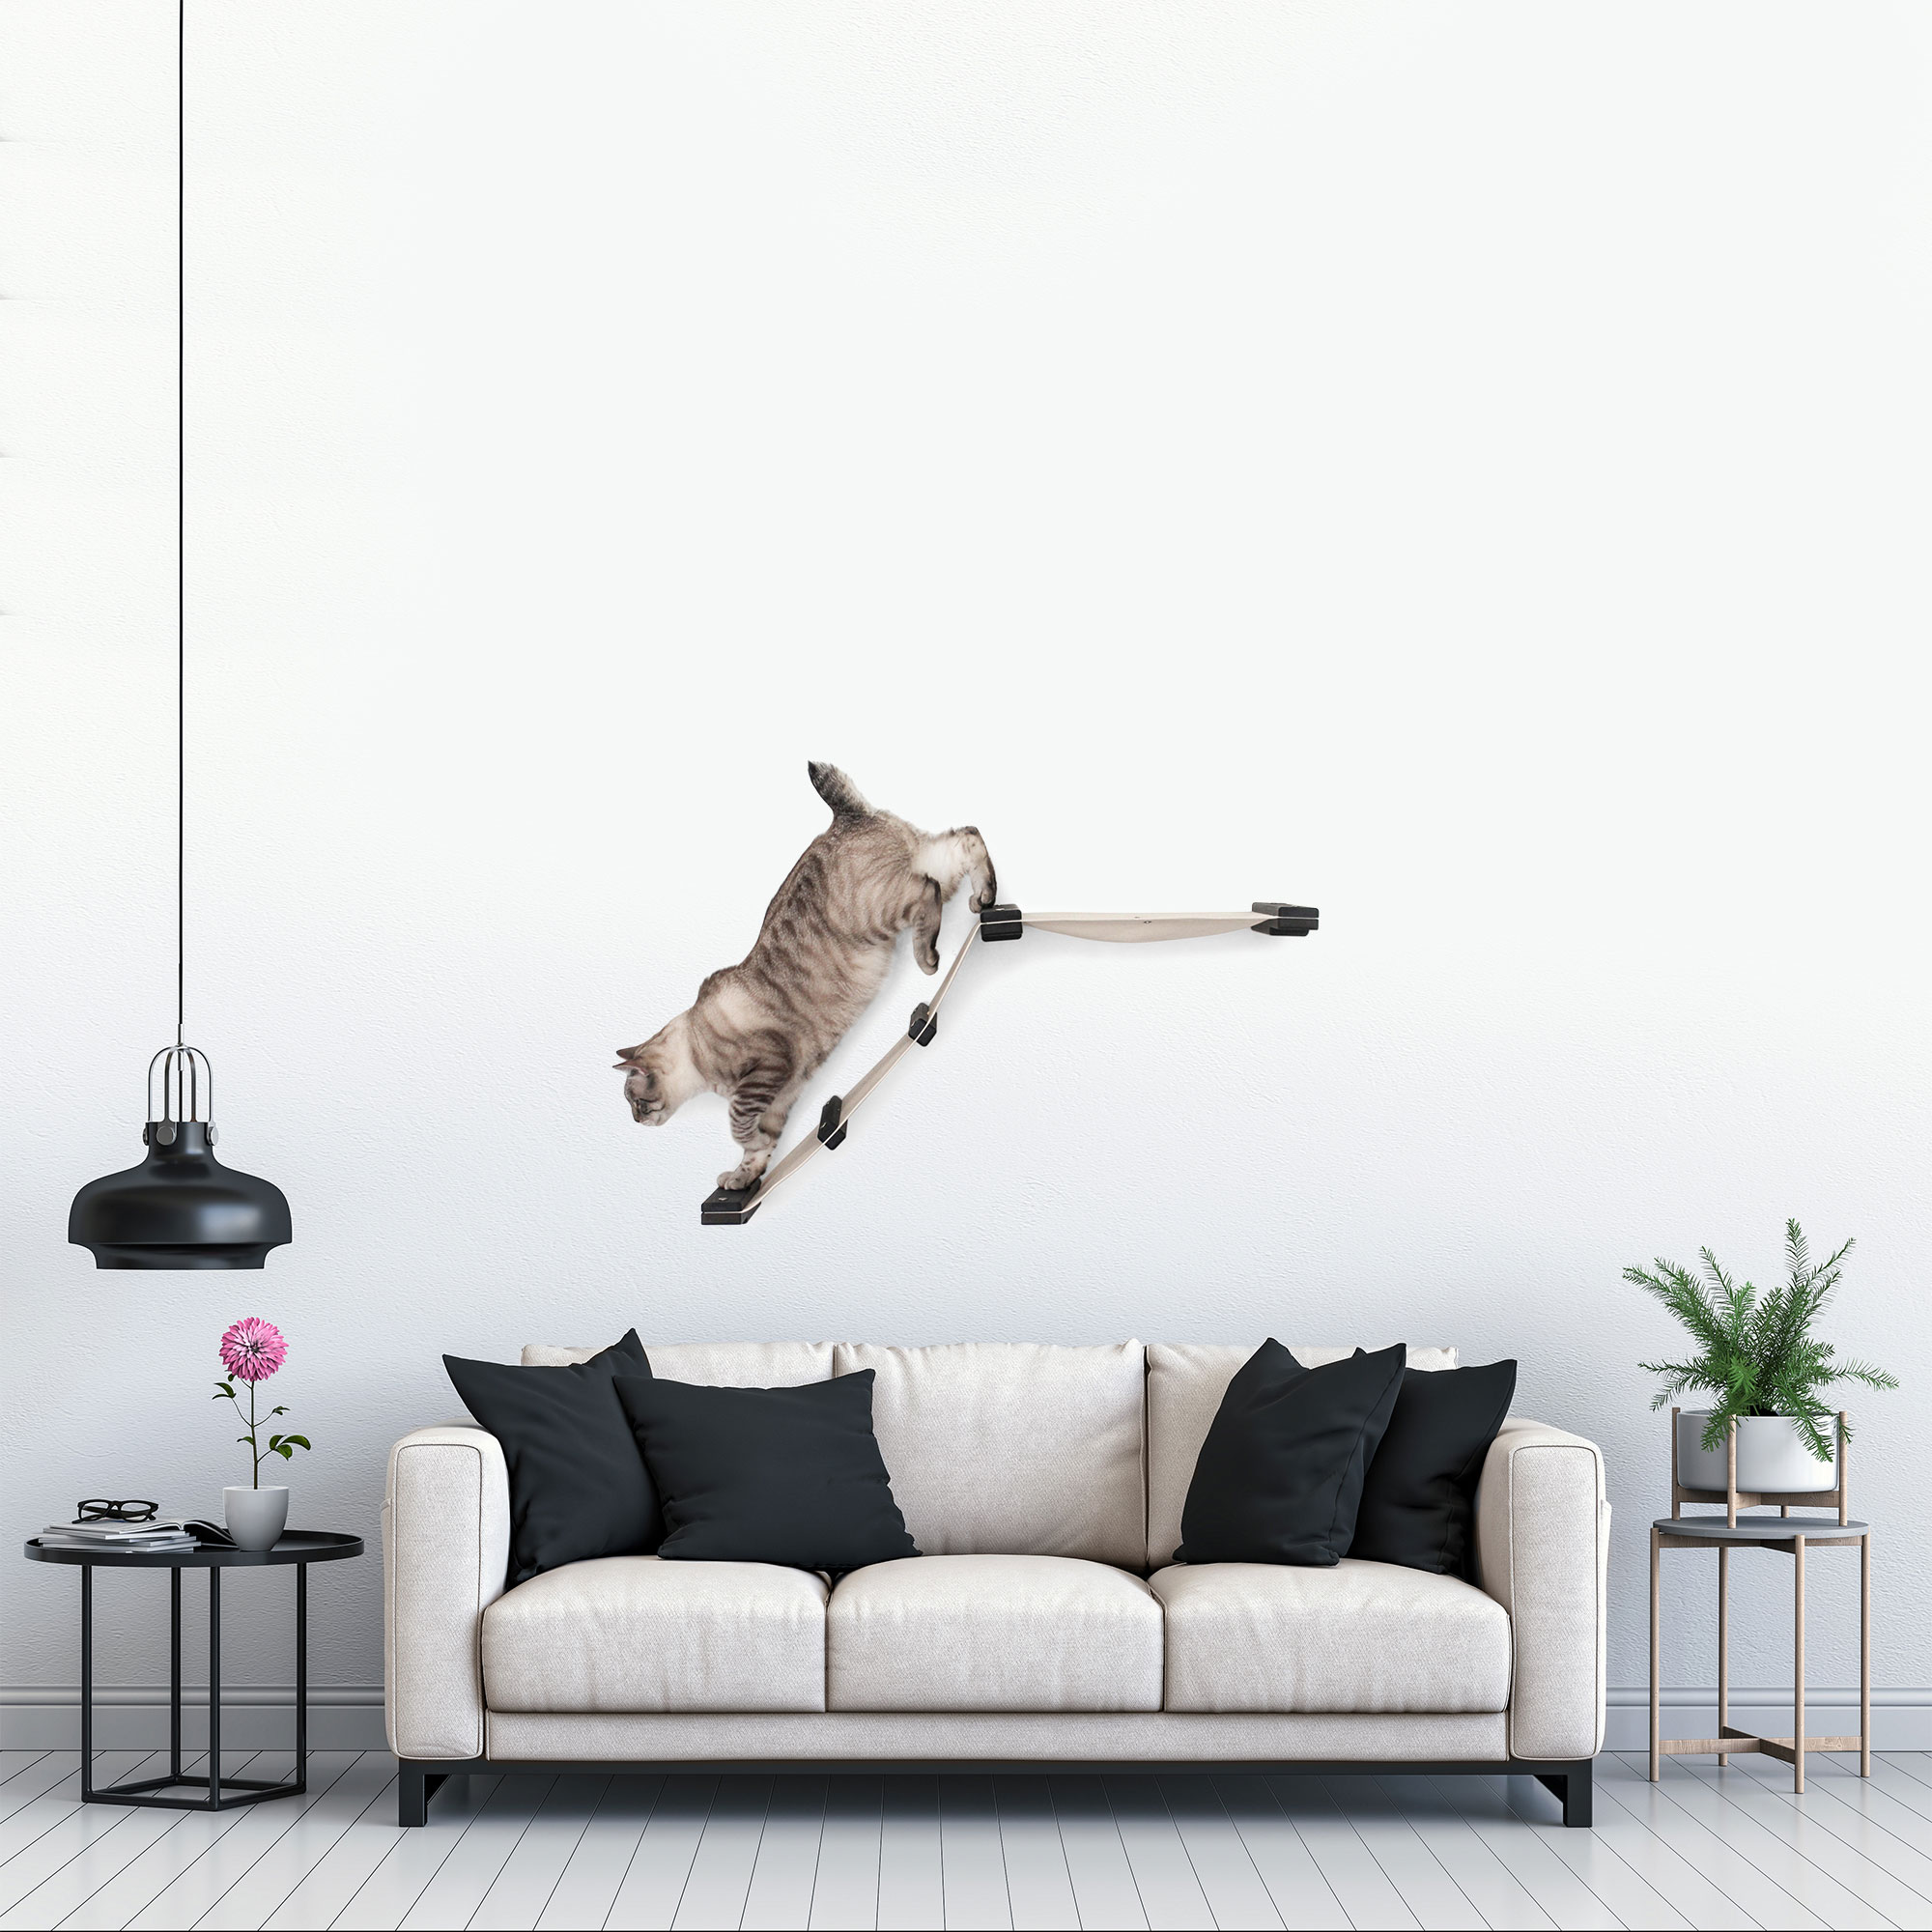 This photo displays our cat walking on the ladder of the Lift mounted in a living room setting. This image shows the Lift in Onyx, a black stain, with Natural fabric, a light tan color.